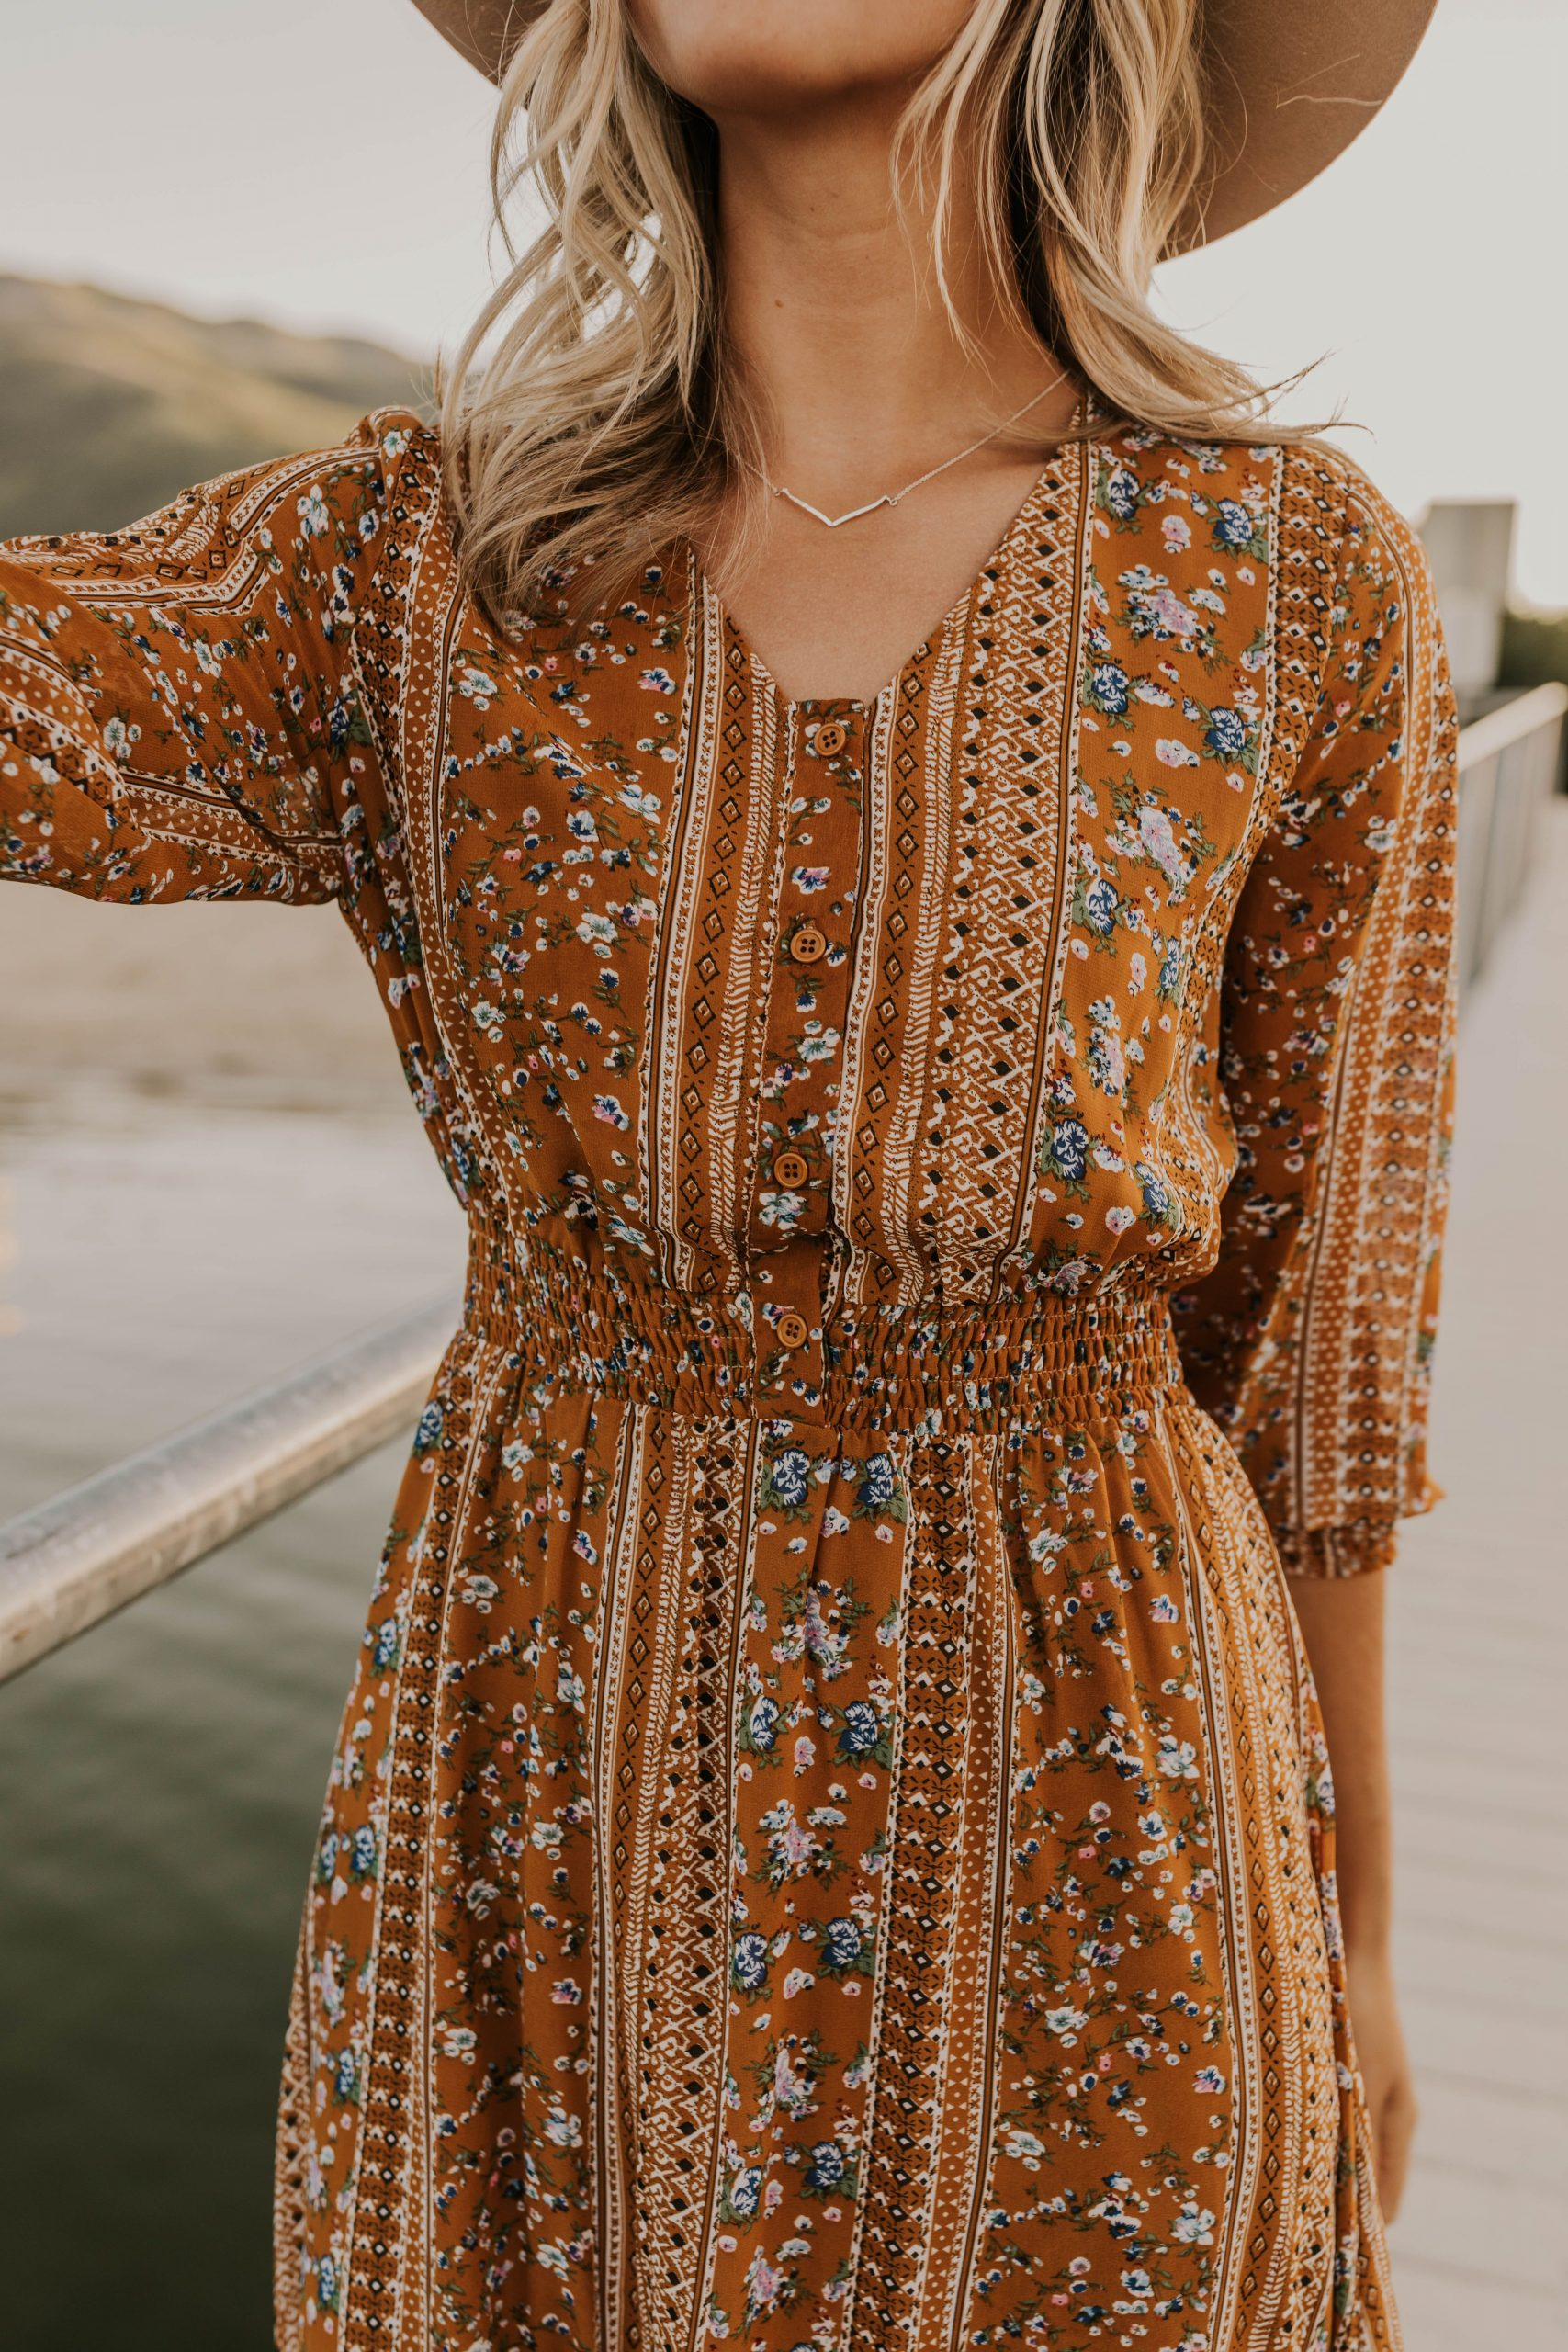 *Available 7/18 on roolee.com/* Floral Print Maxi Dress – Boho Dress for Women -…